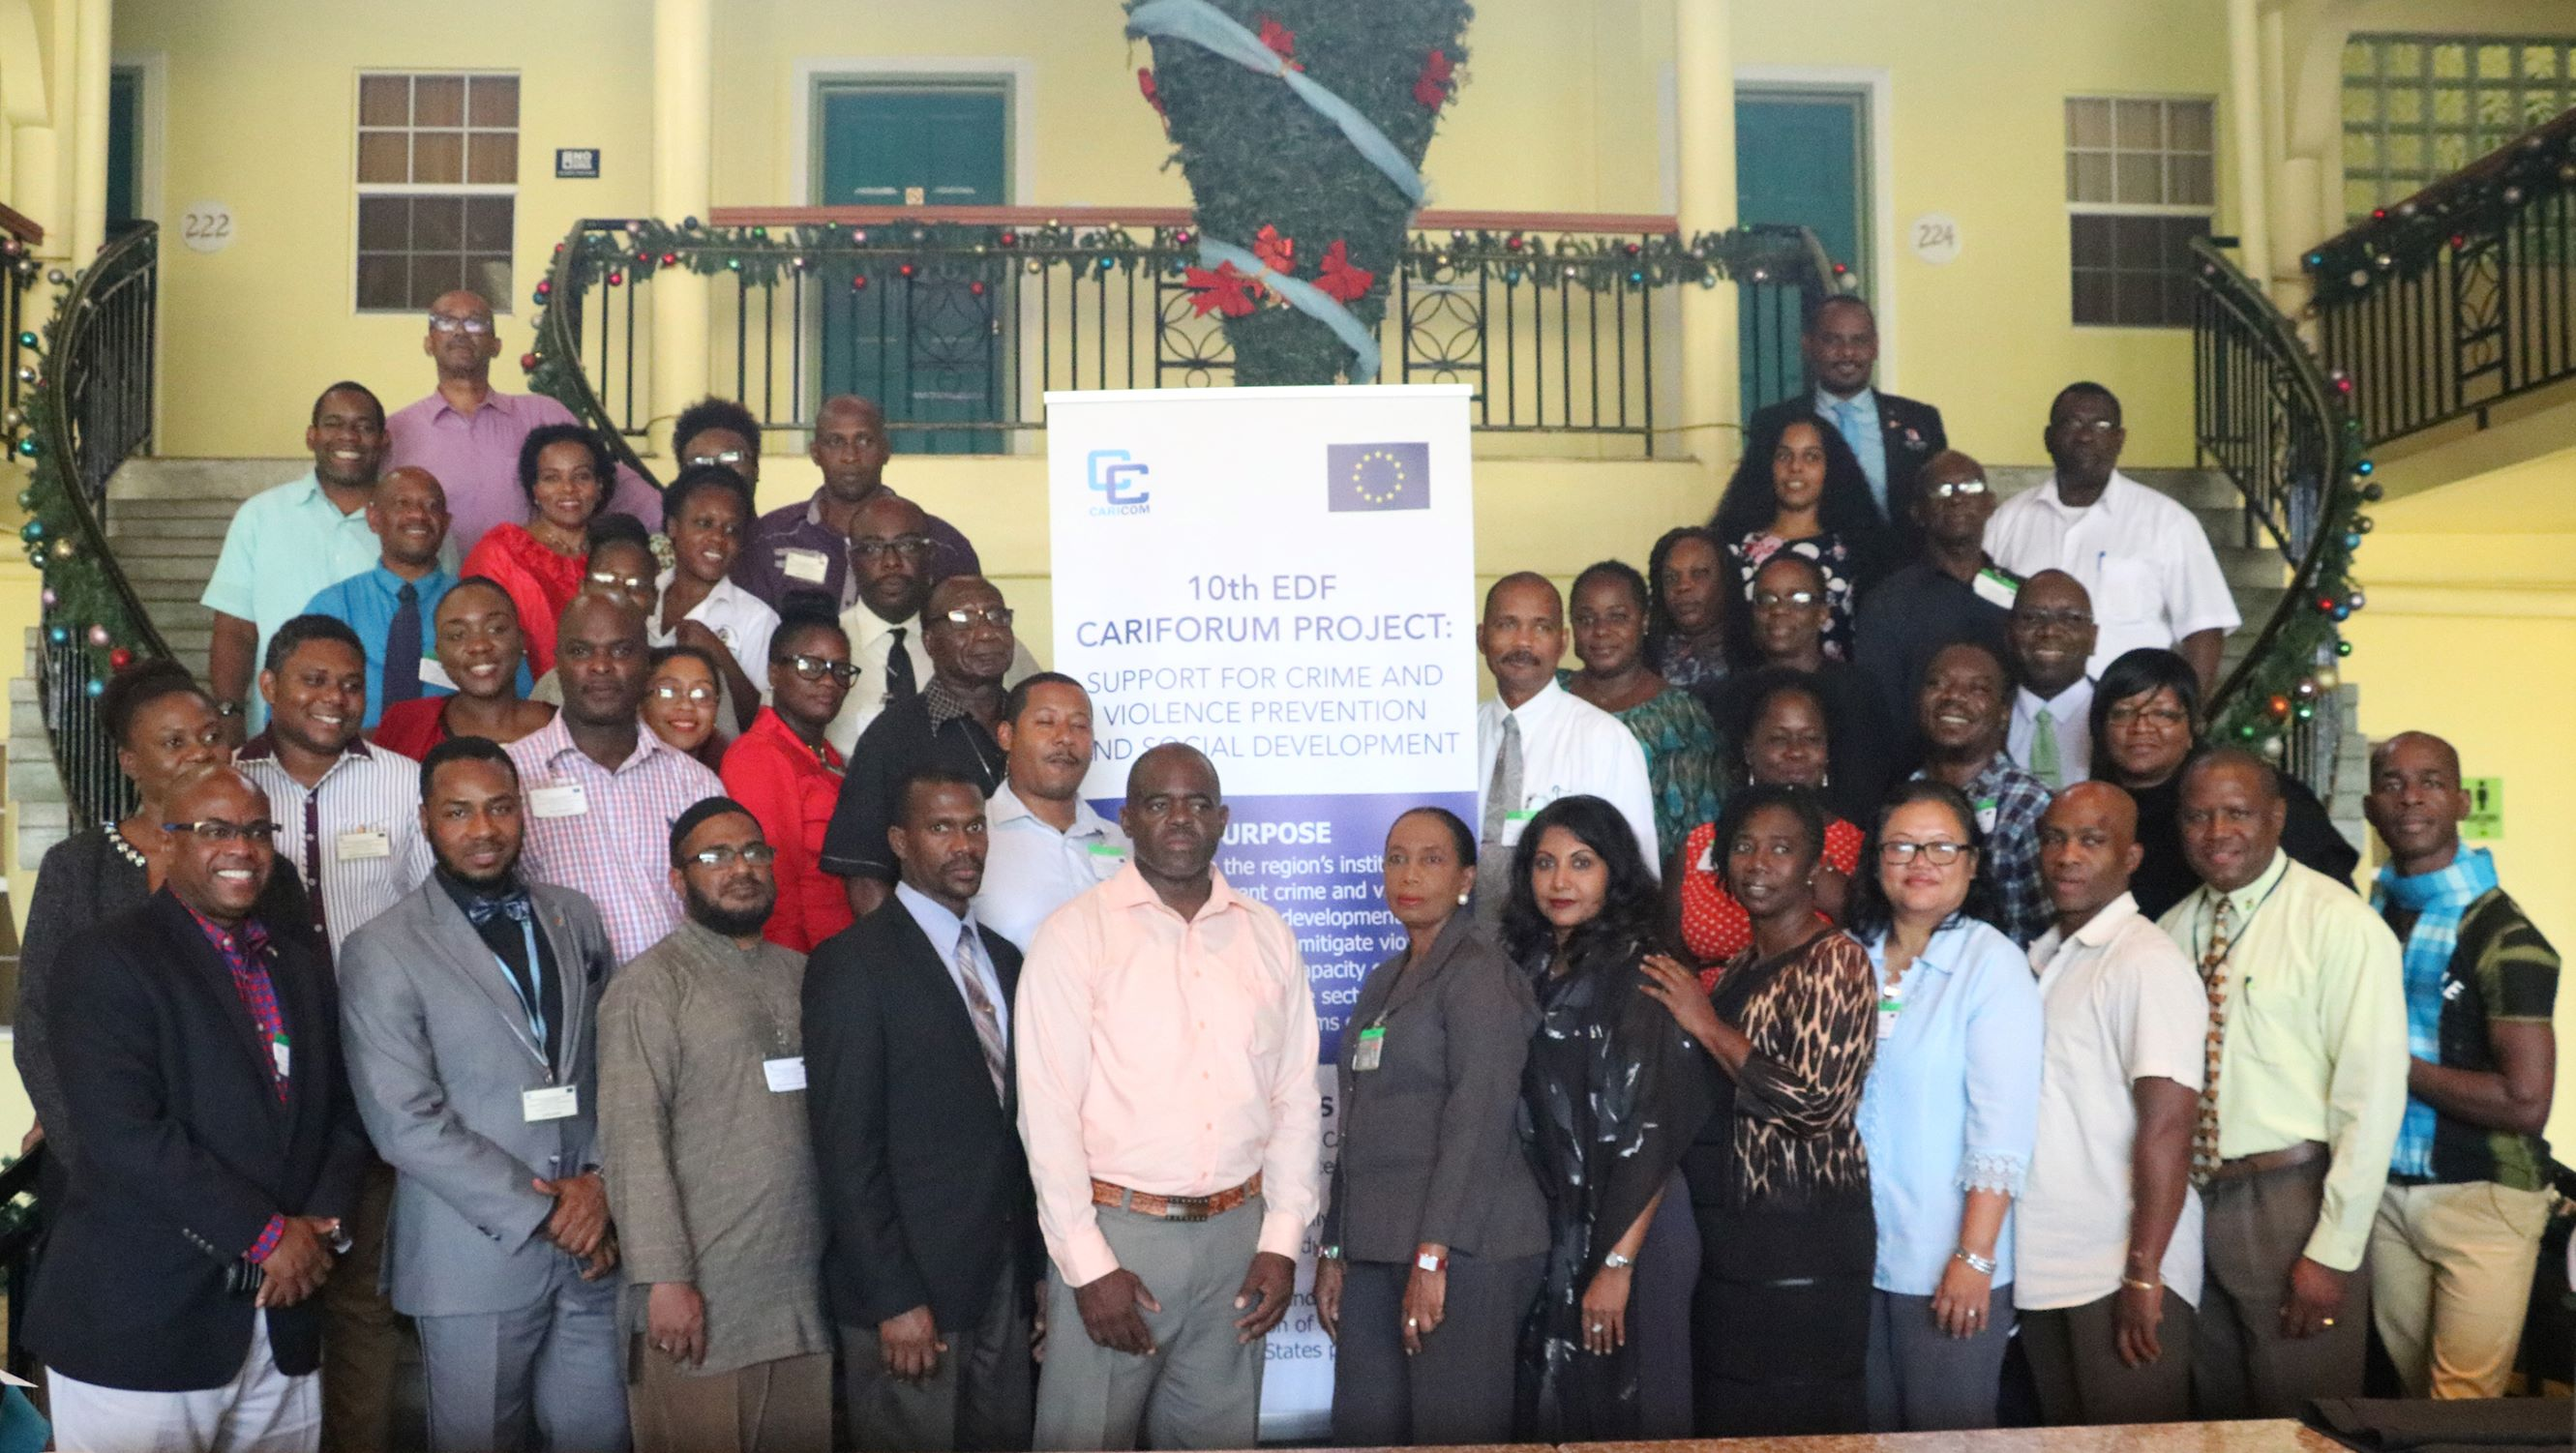 Photo of CARIFORUM/EU Capacity Building Workshop on Restorative Justice ends with loud praise for the Initiative